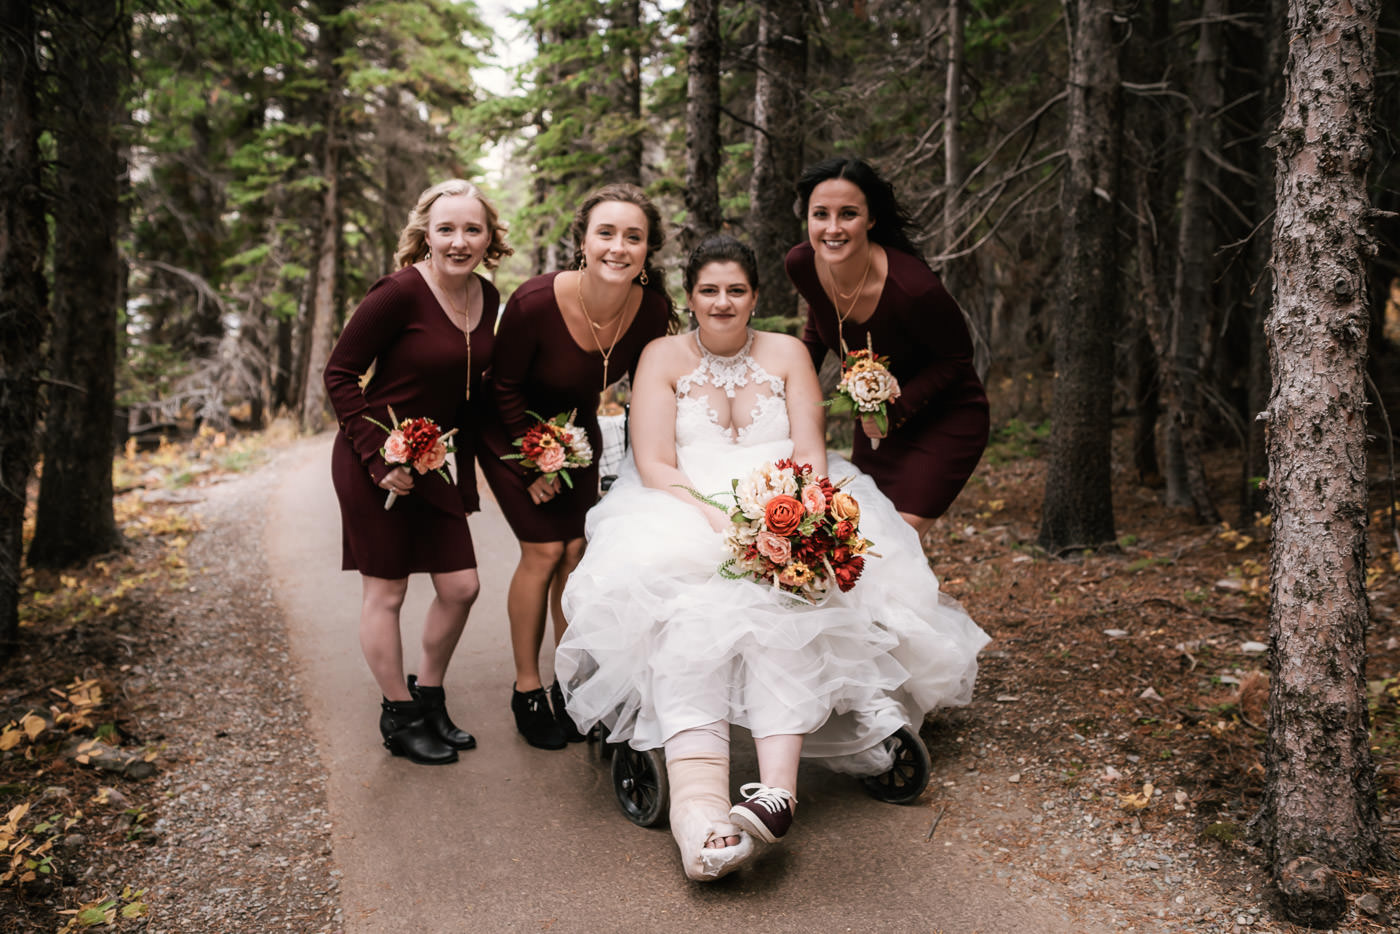 Bride poses with her bridesmaids as they travel down the trail to the ceremony site at Switcurrent Lake.